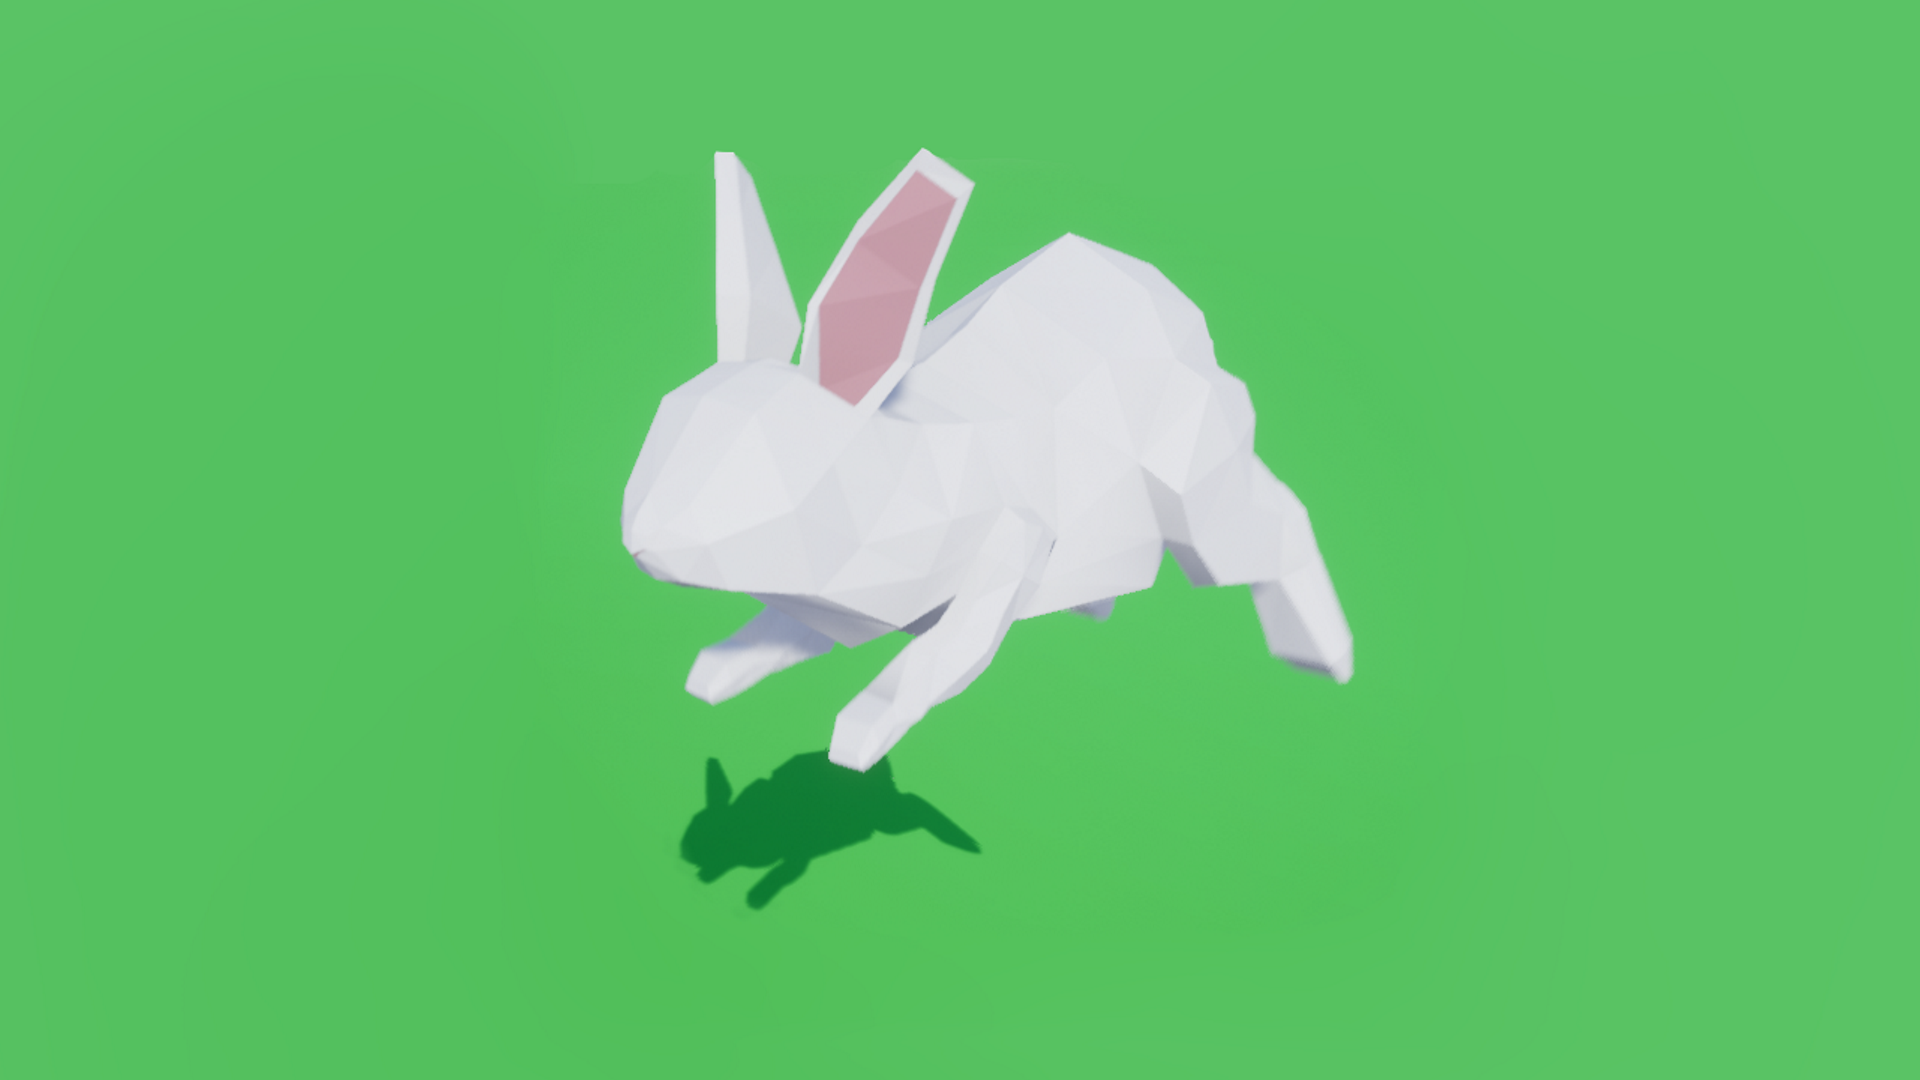 Low Poly Rabbits by BryanO Art in Characters - UE4 Marketplace